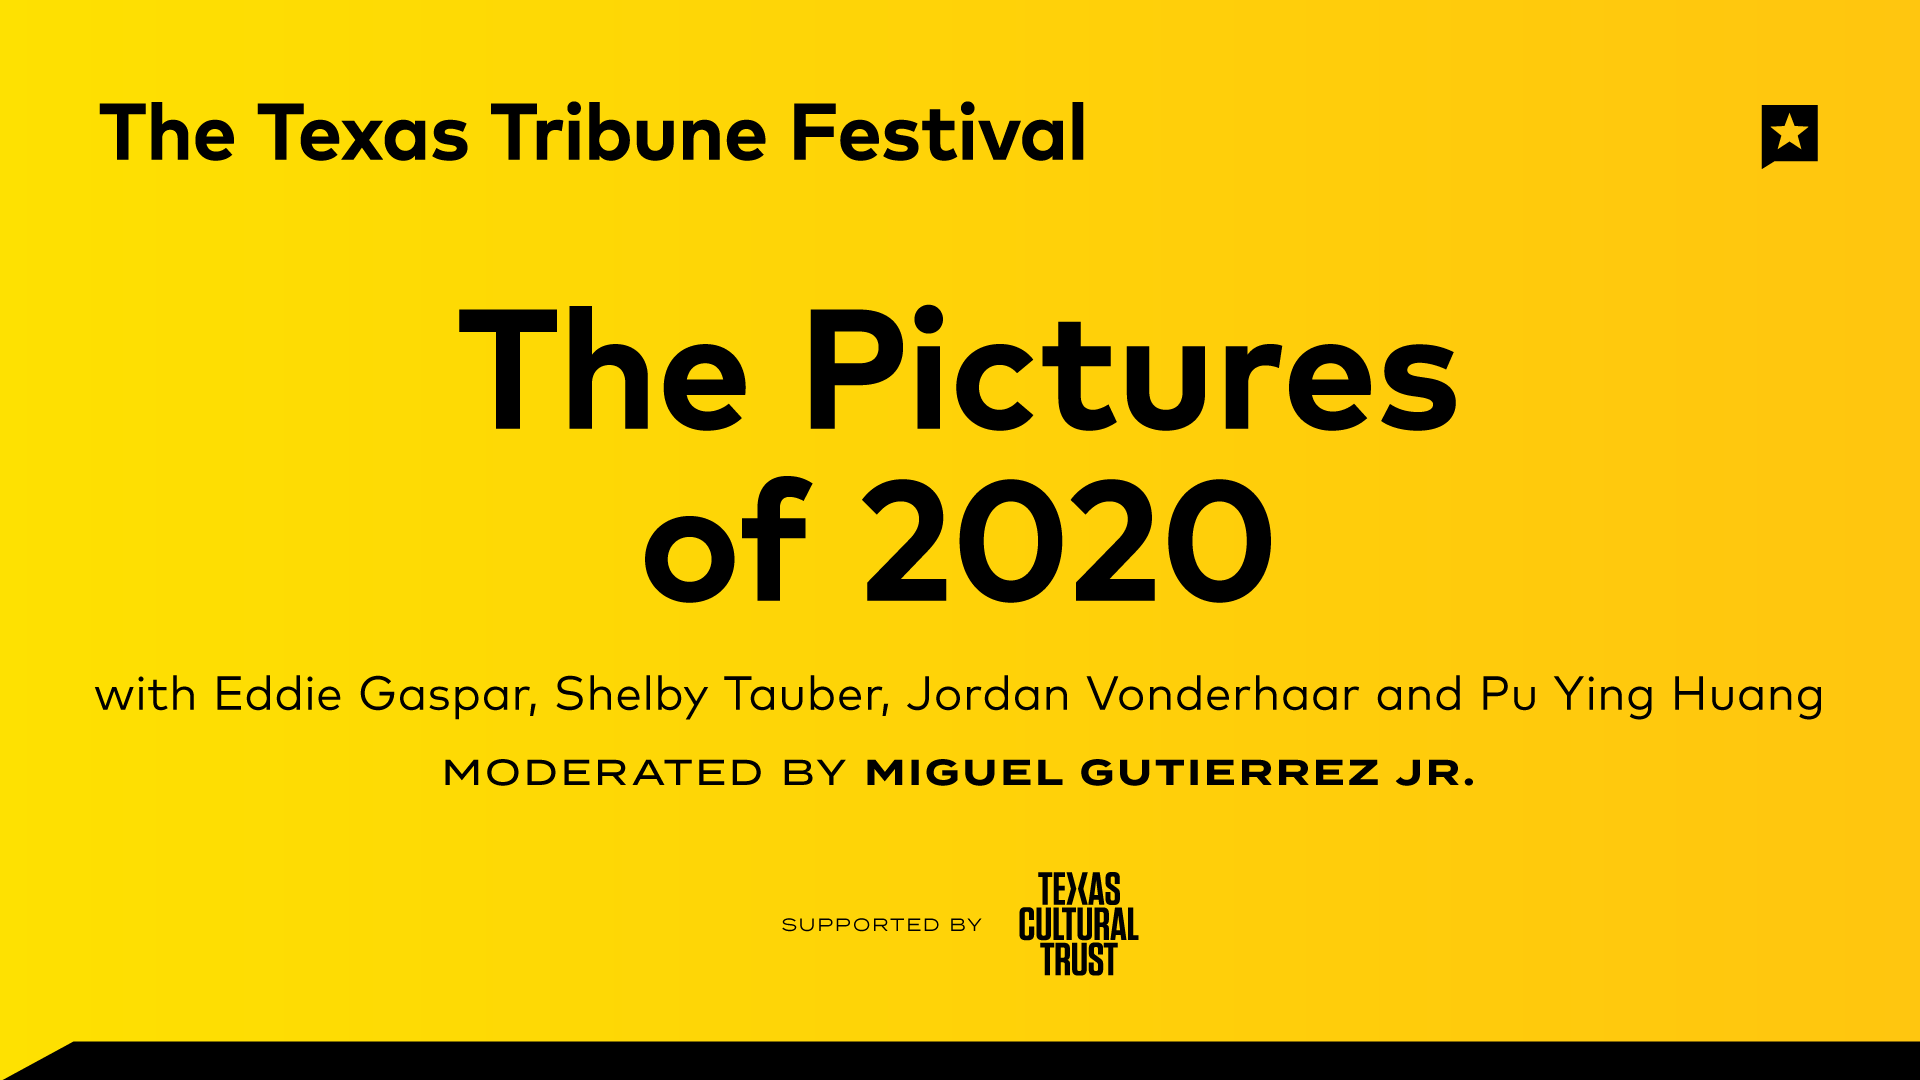 The Pictures of 2020